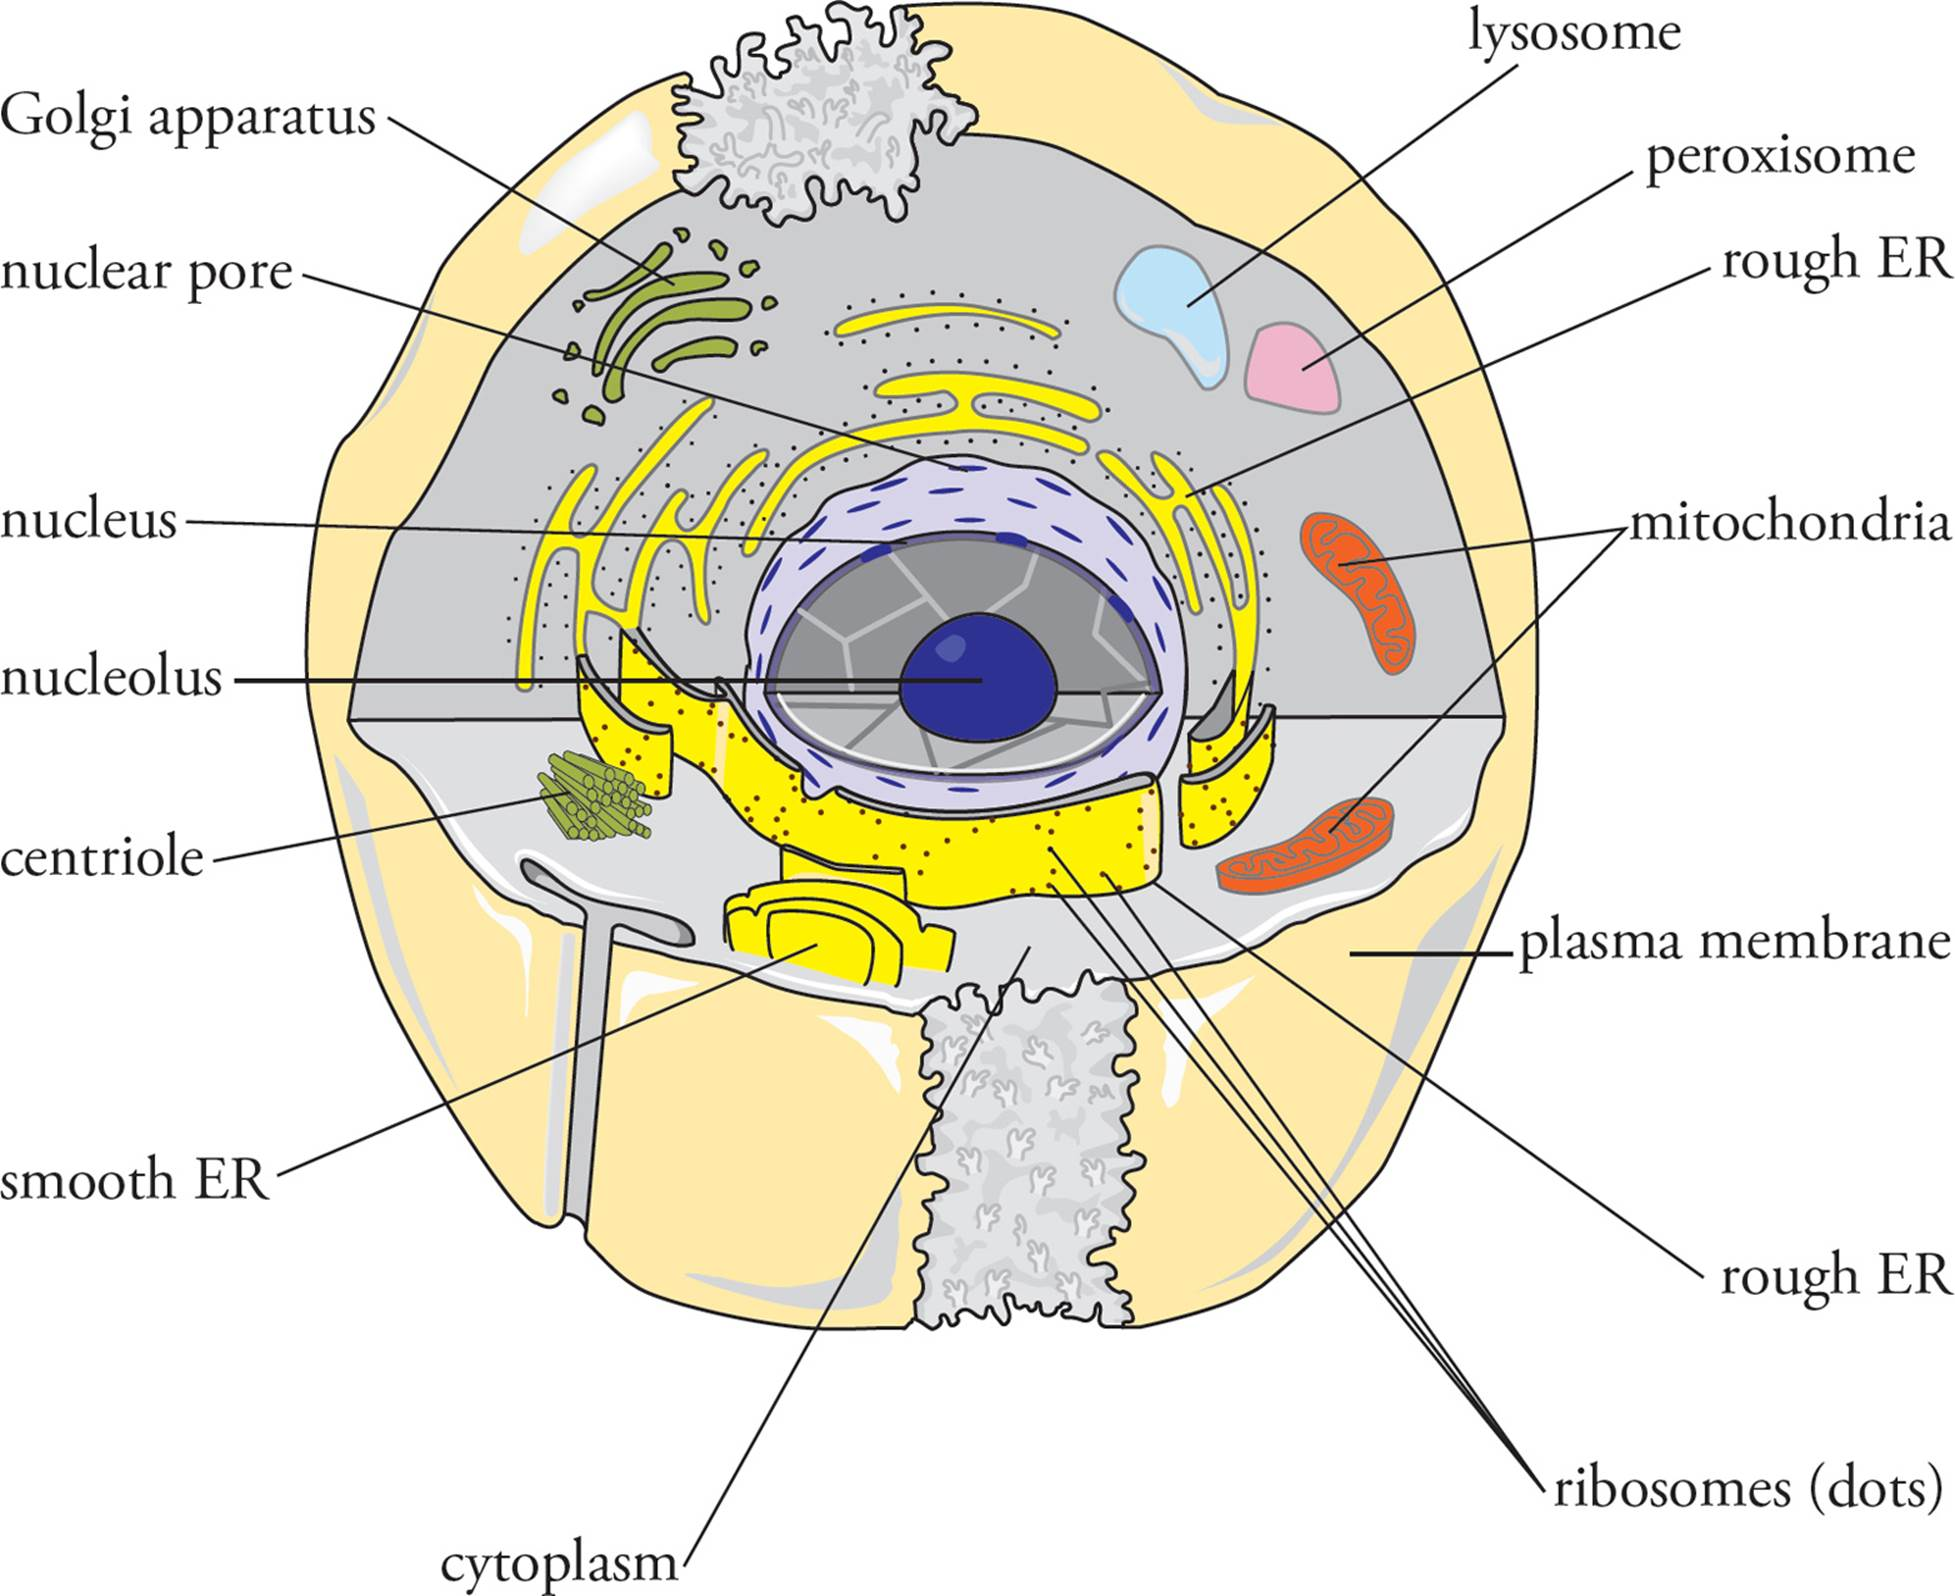 Eukaryotic Cells Mcat Biology And Biochemistry Of Animals Left Plant Right Our Discussion Will Be Based On The Animal Cell Fungi Have Already Been Discussed In Previous Chapter Neither Plants Nor Protists Motile